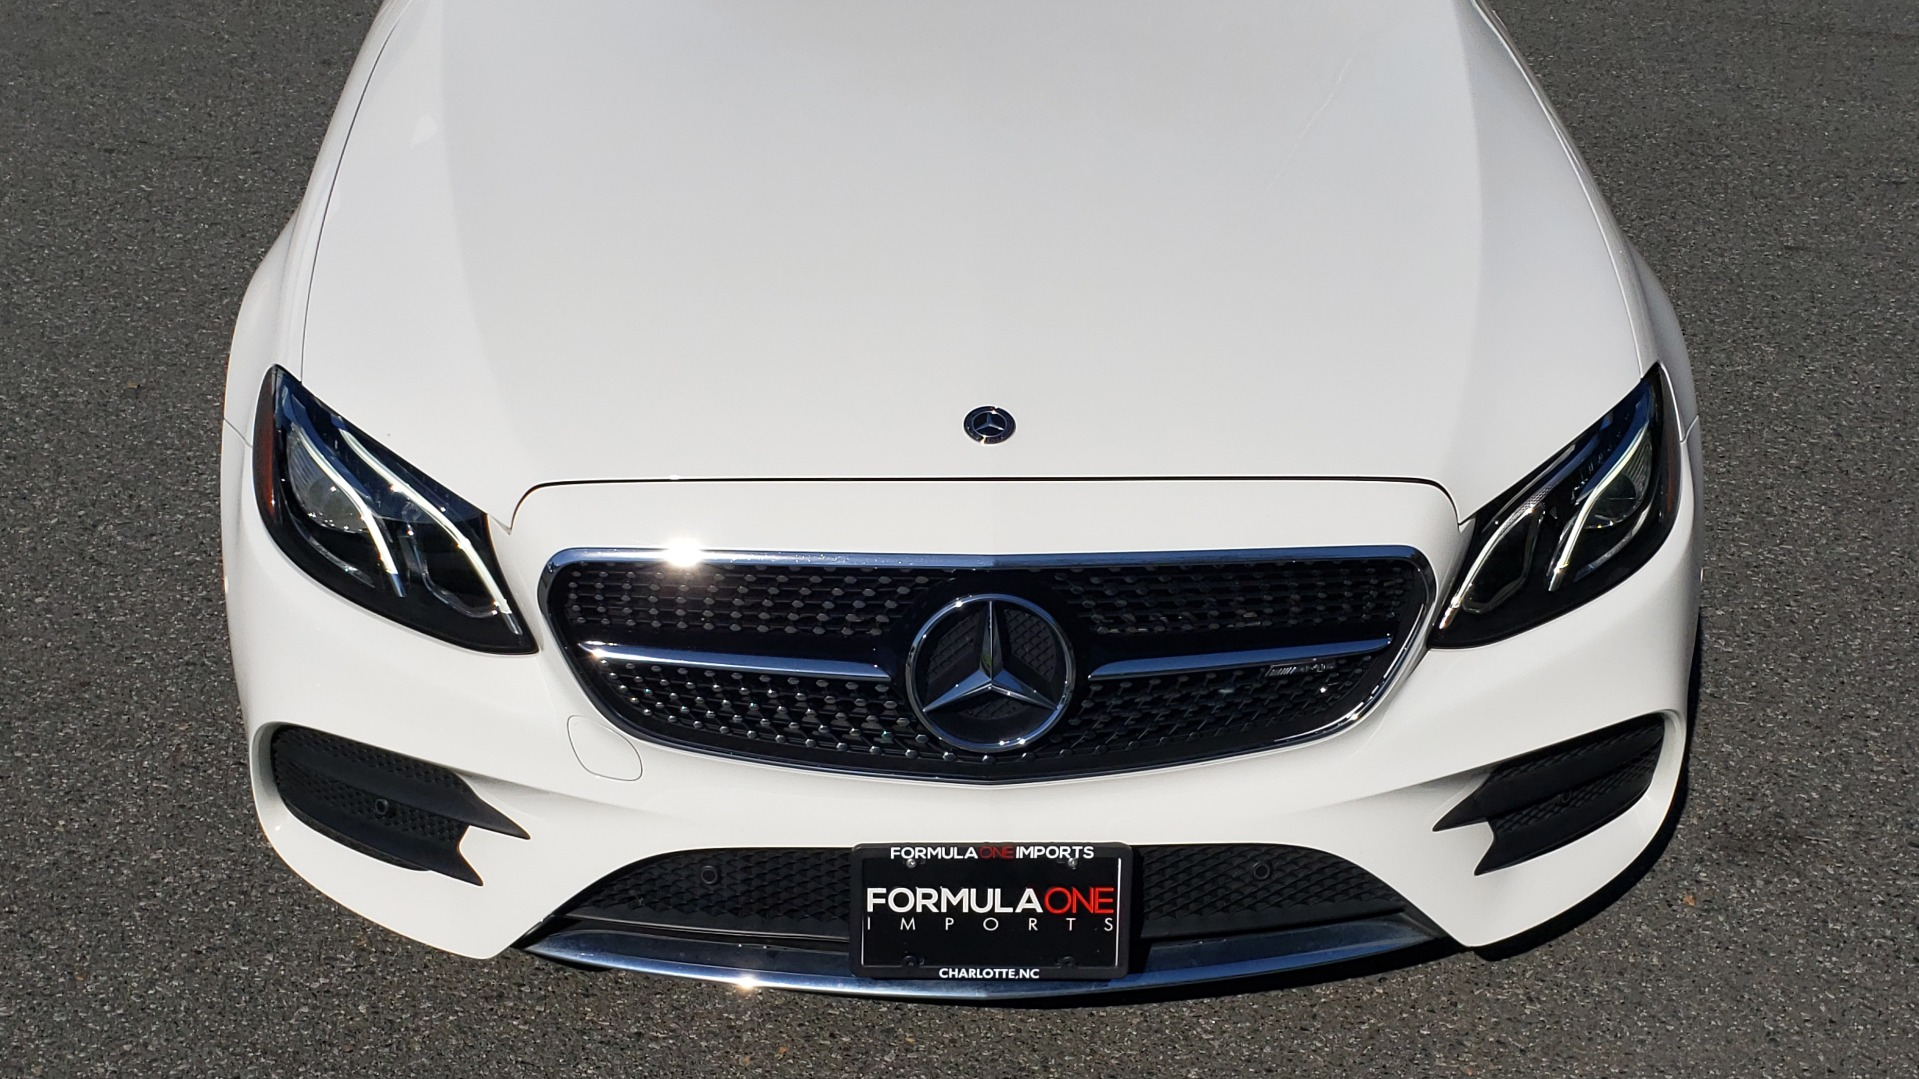 Used 2018 Mercedes-Benz E-Class E 300 for sale Sold at Formula Imports in Charlotte NC 28227 21